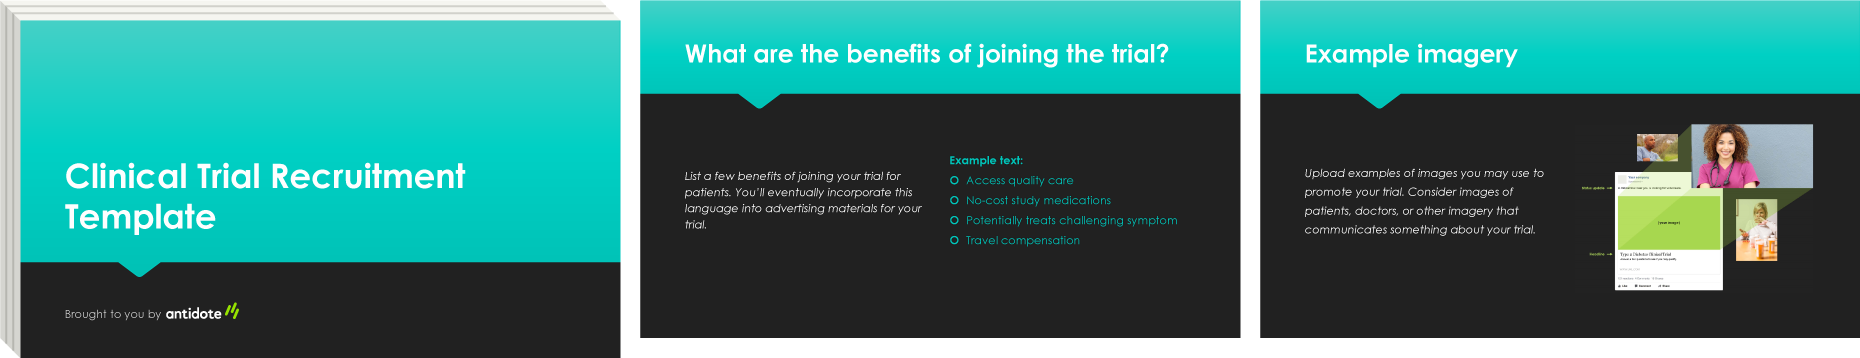 Clinical-trial-recruitment-guide-LP-image-horizontal